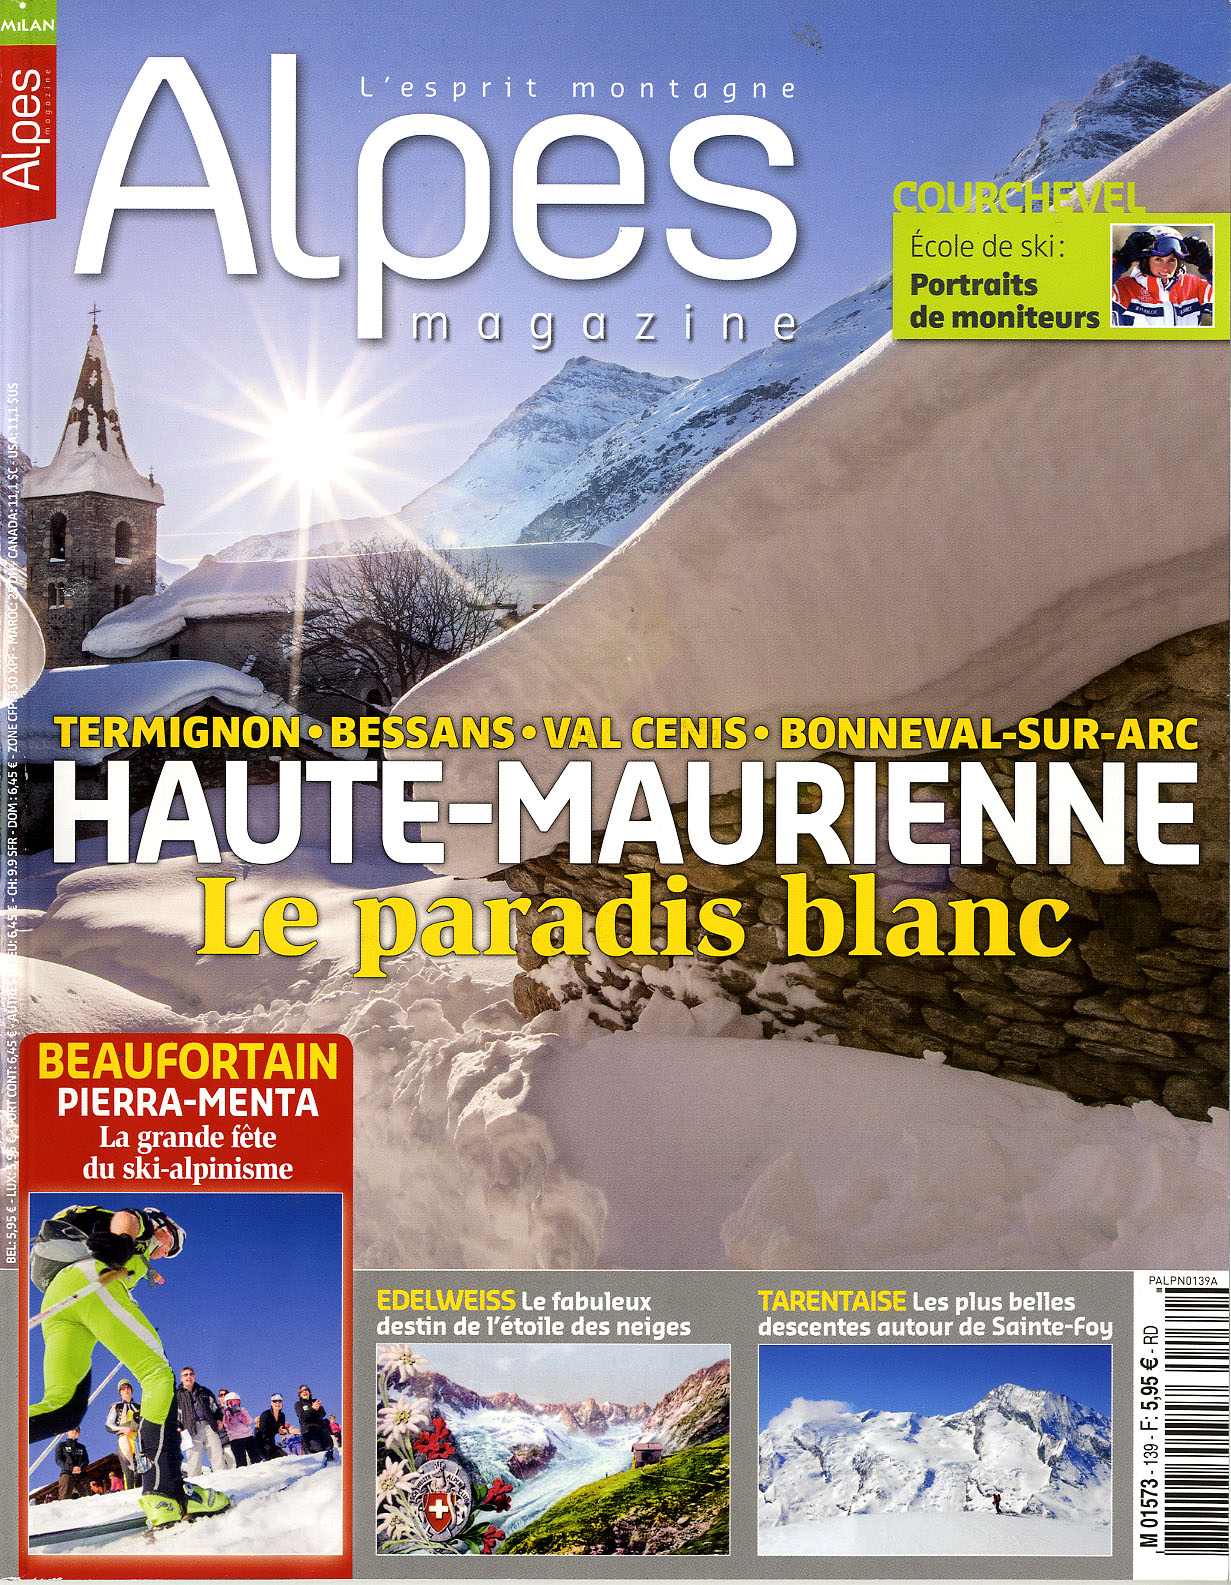 ARTICLE ALPES MAGASINE 3